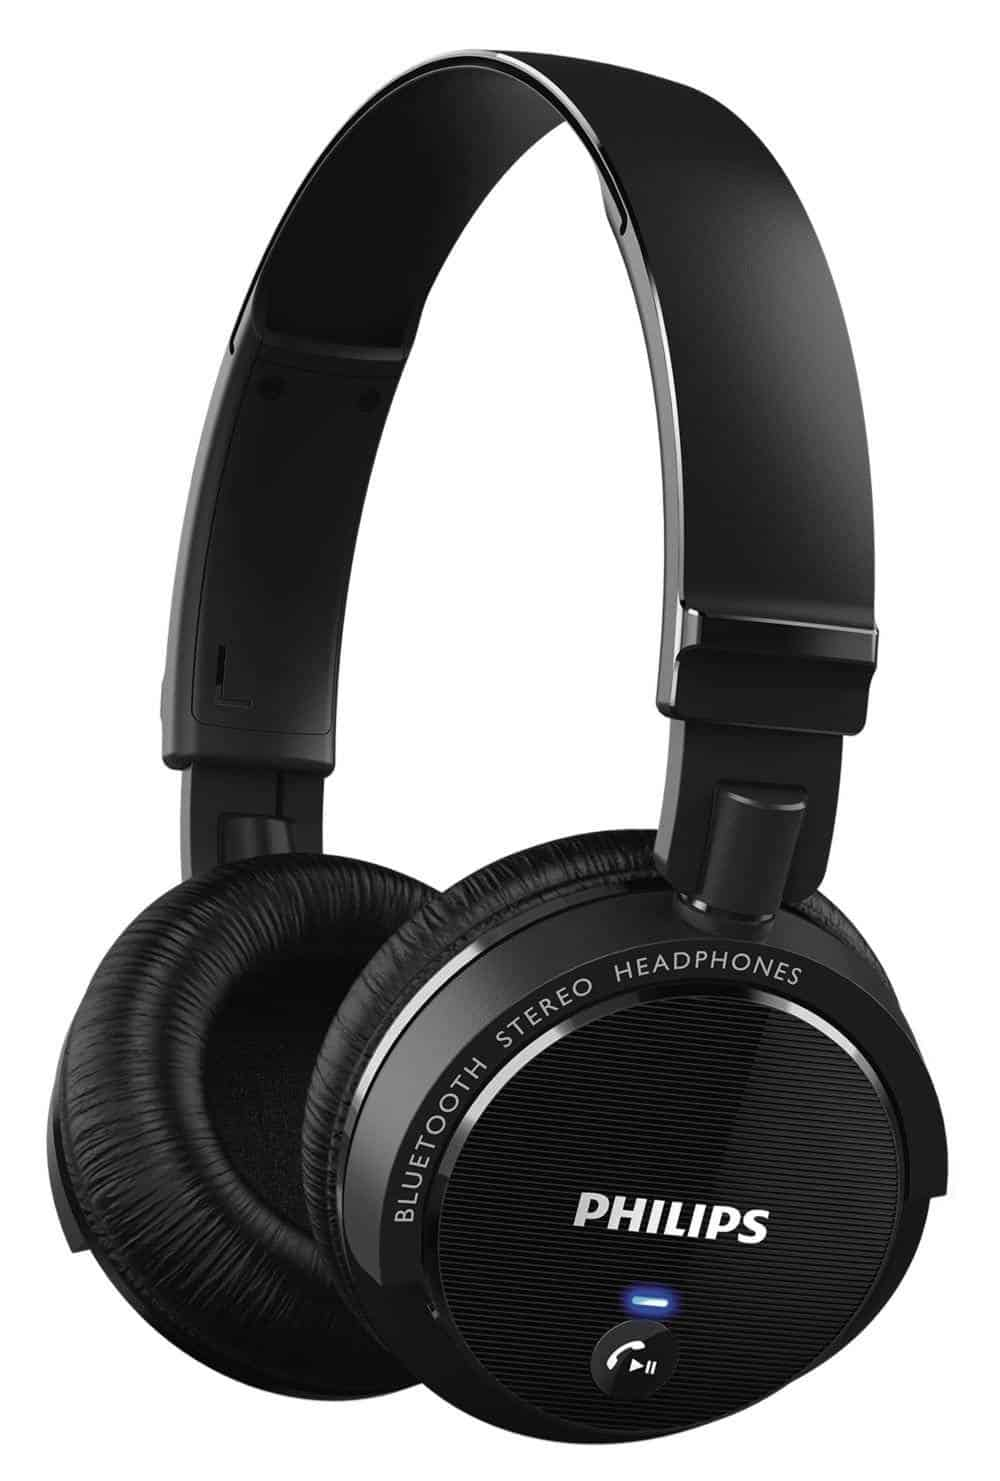 philips-wireless-headphones